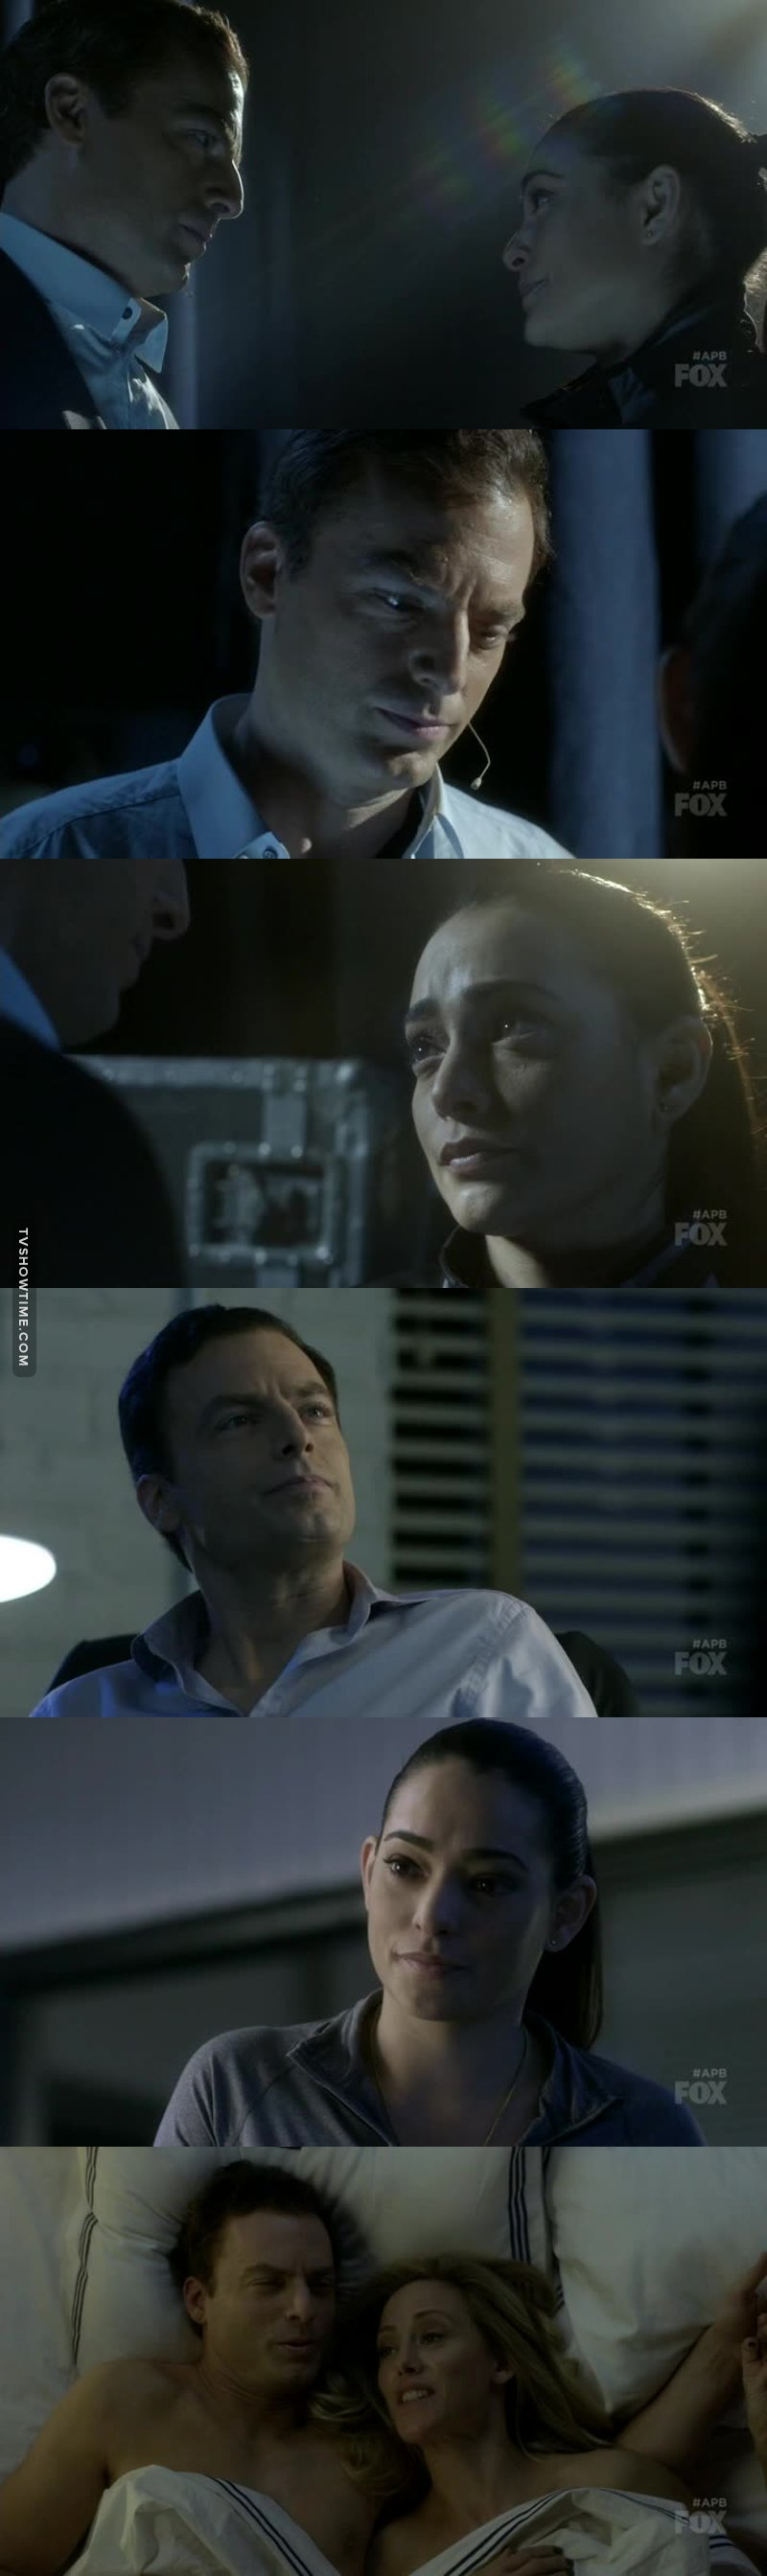 I can feel the chemistry between these two through my computer.. And then at the end with him and Laurel or what her name was, ugh.